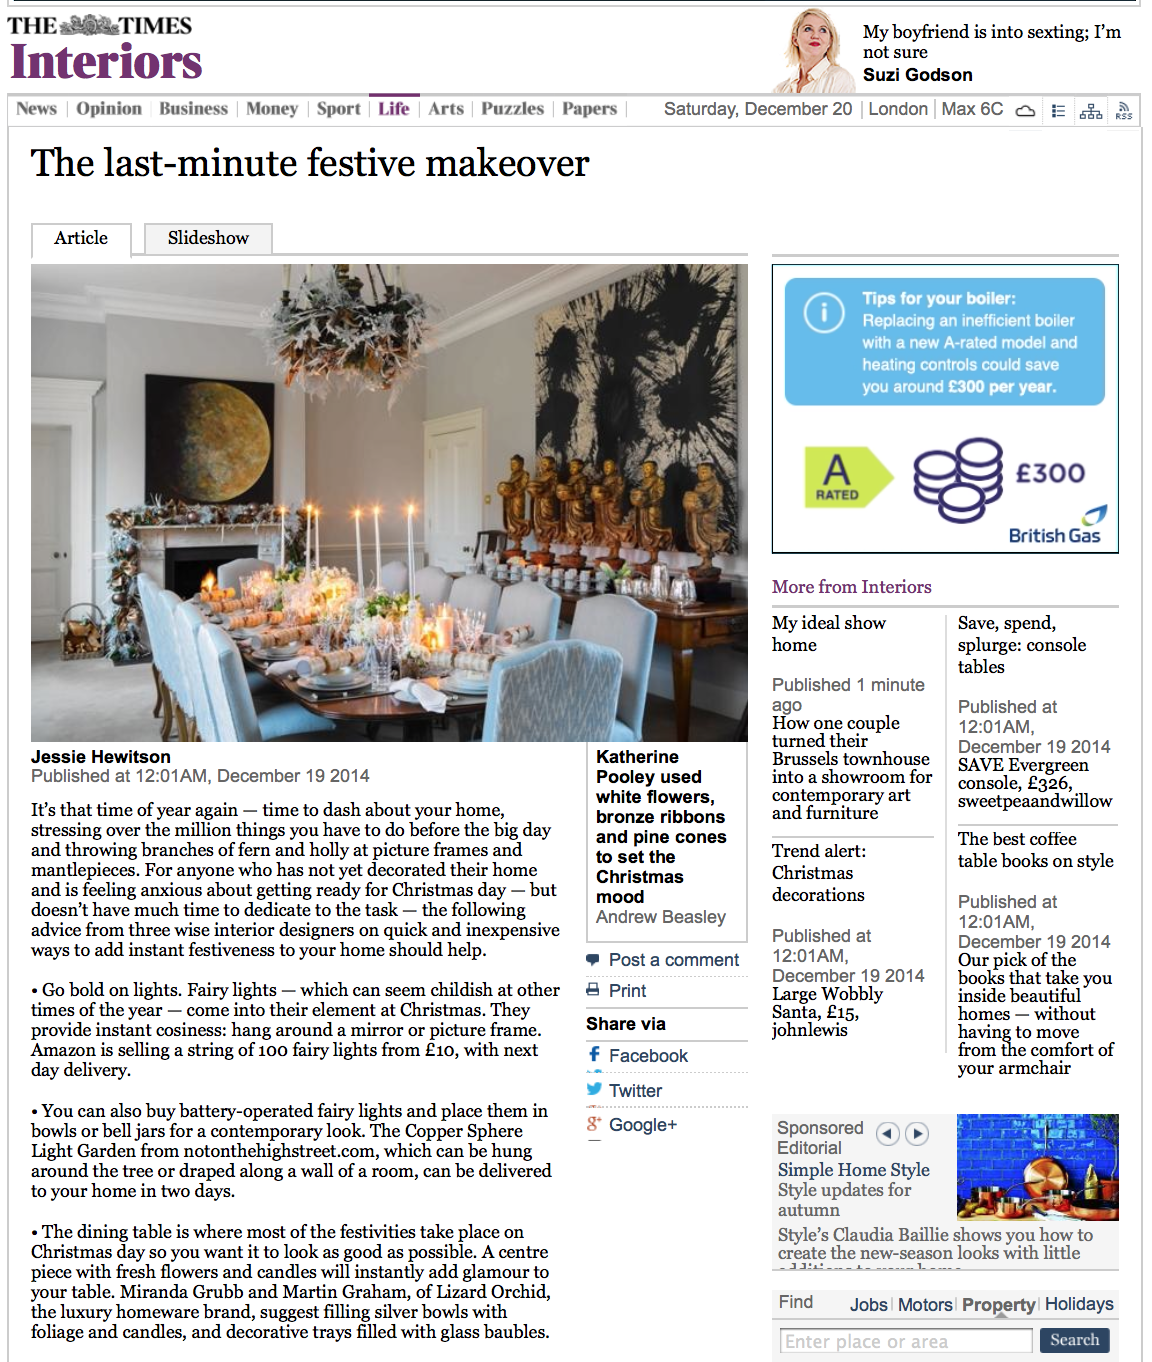 THE TIMES - DECEMBER 2014 1